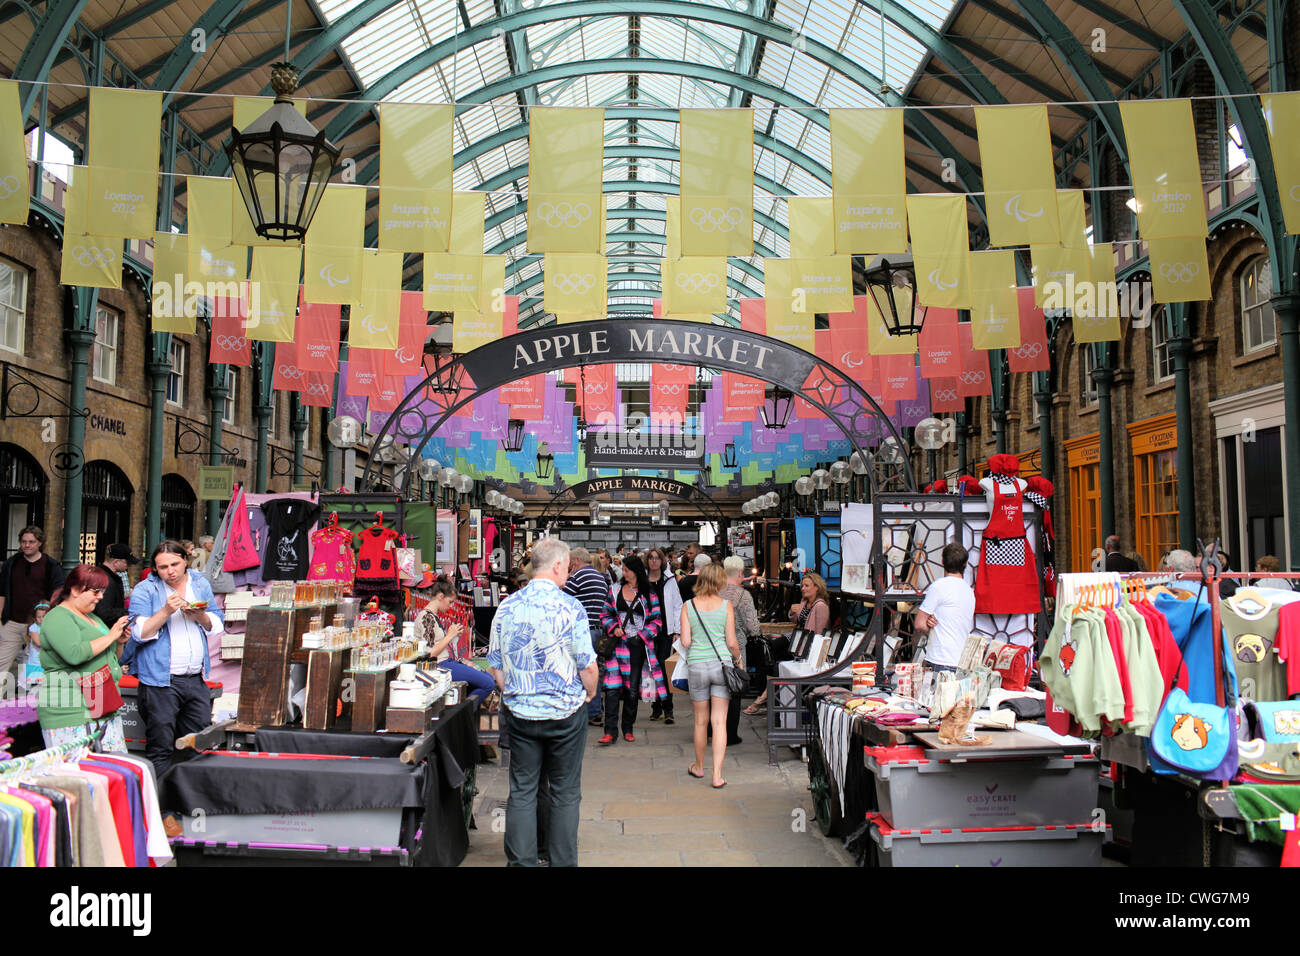 Covent Garden Apple Market Stalls Selling A Variety Of Arts And Stock Photo Alamy